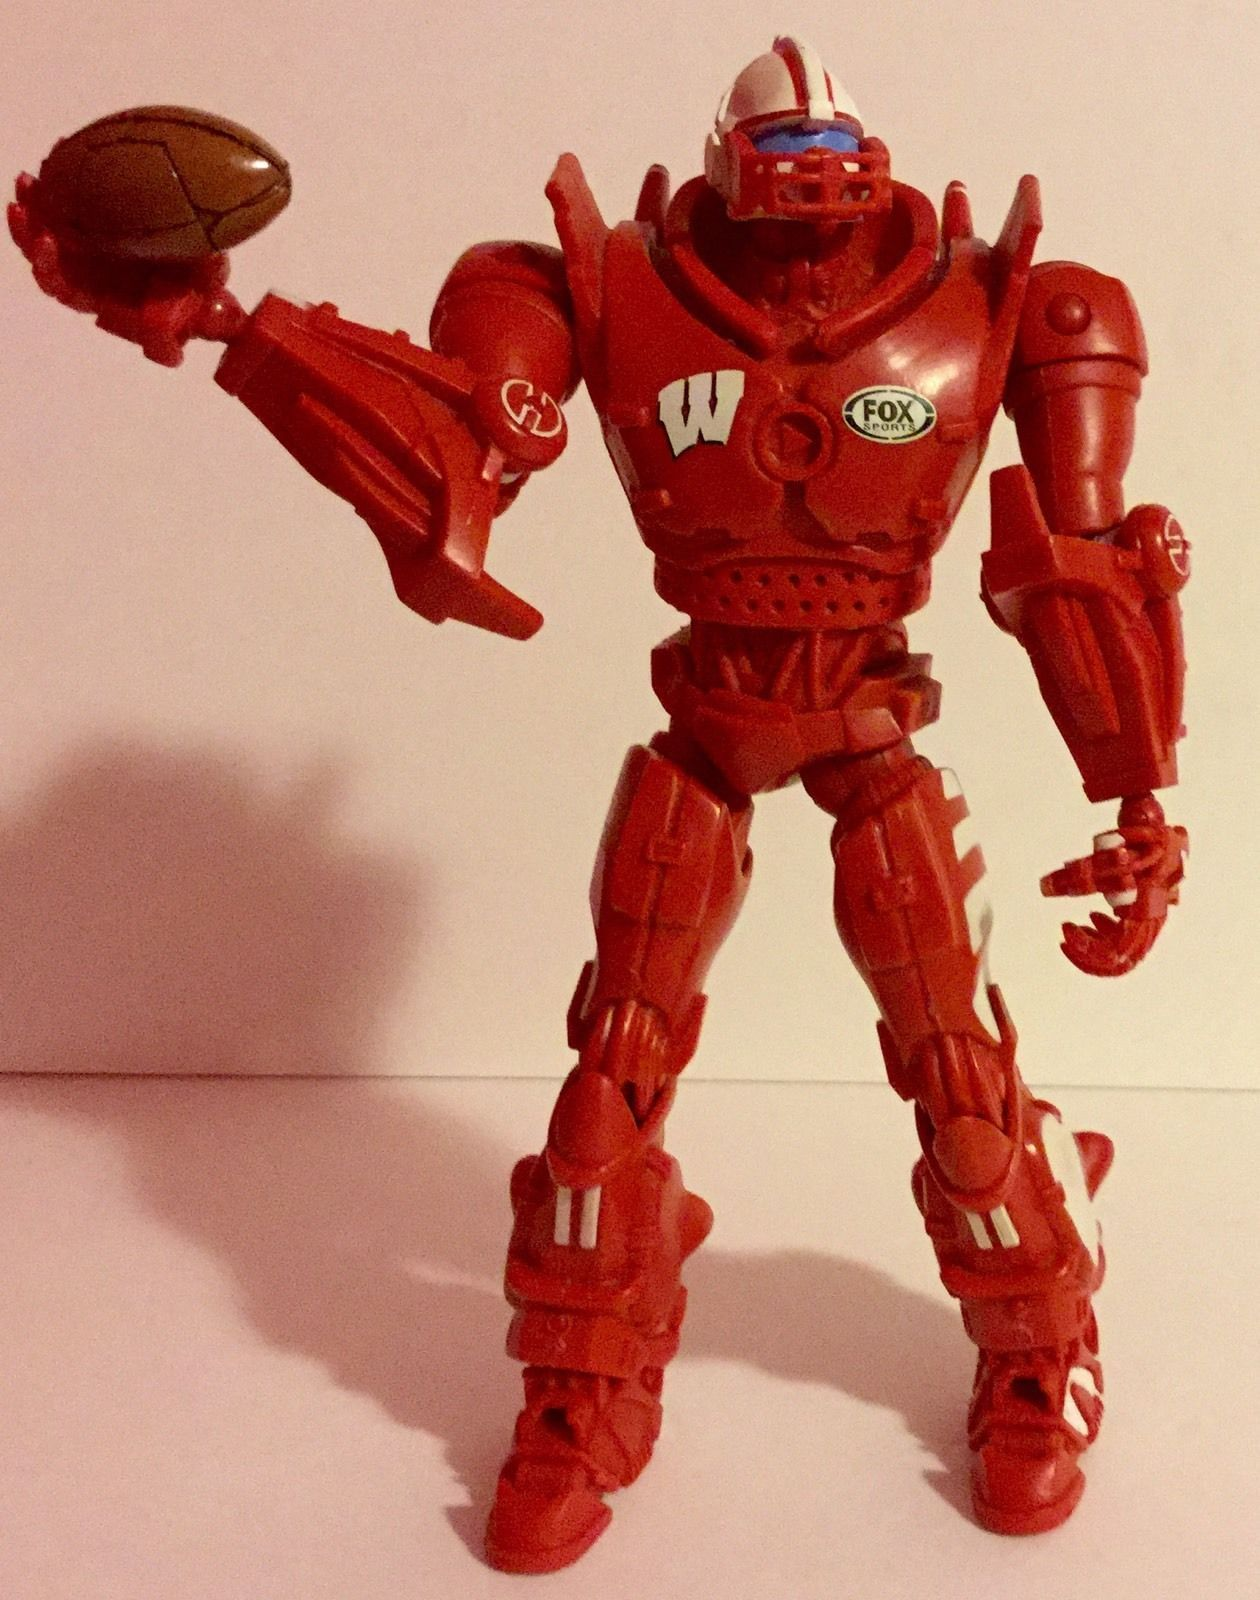 "WISCONSIN BADGERS FOX SPORTS CLEATUS ROBOT 10"" Football Action Figure GO BADGERS"